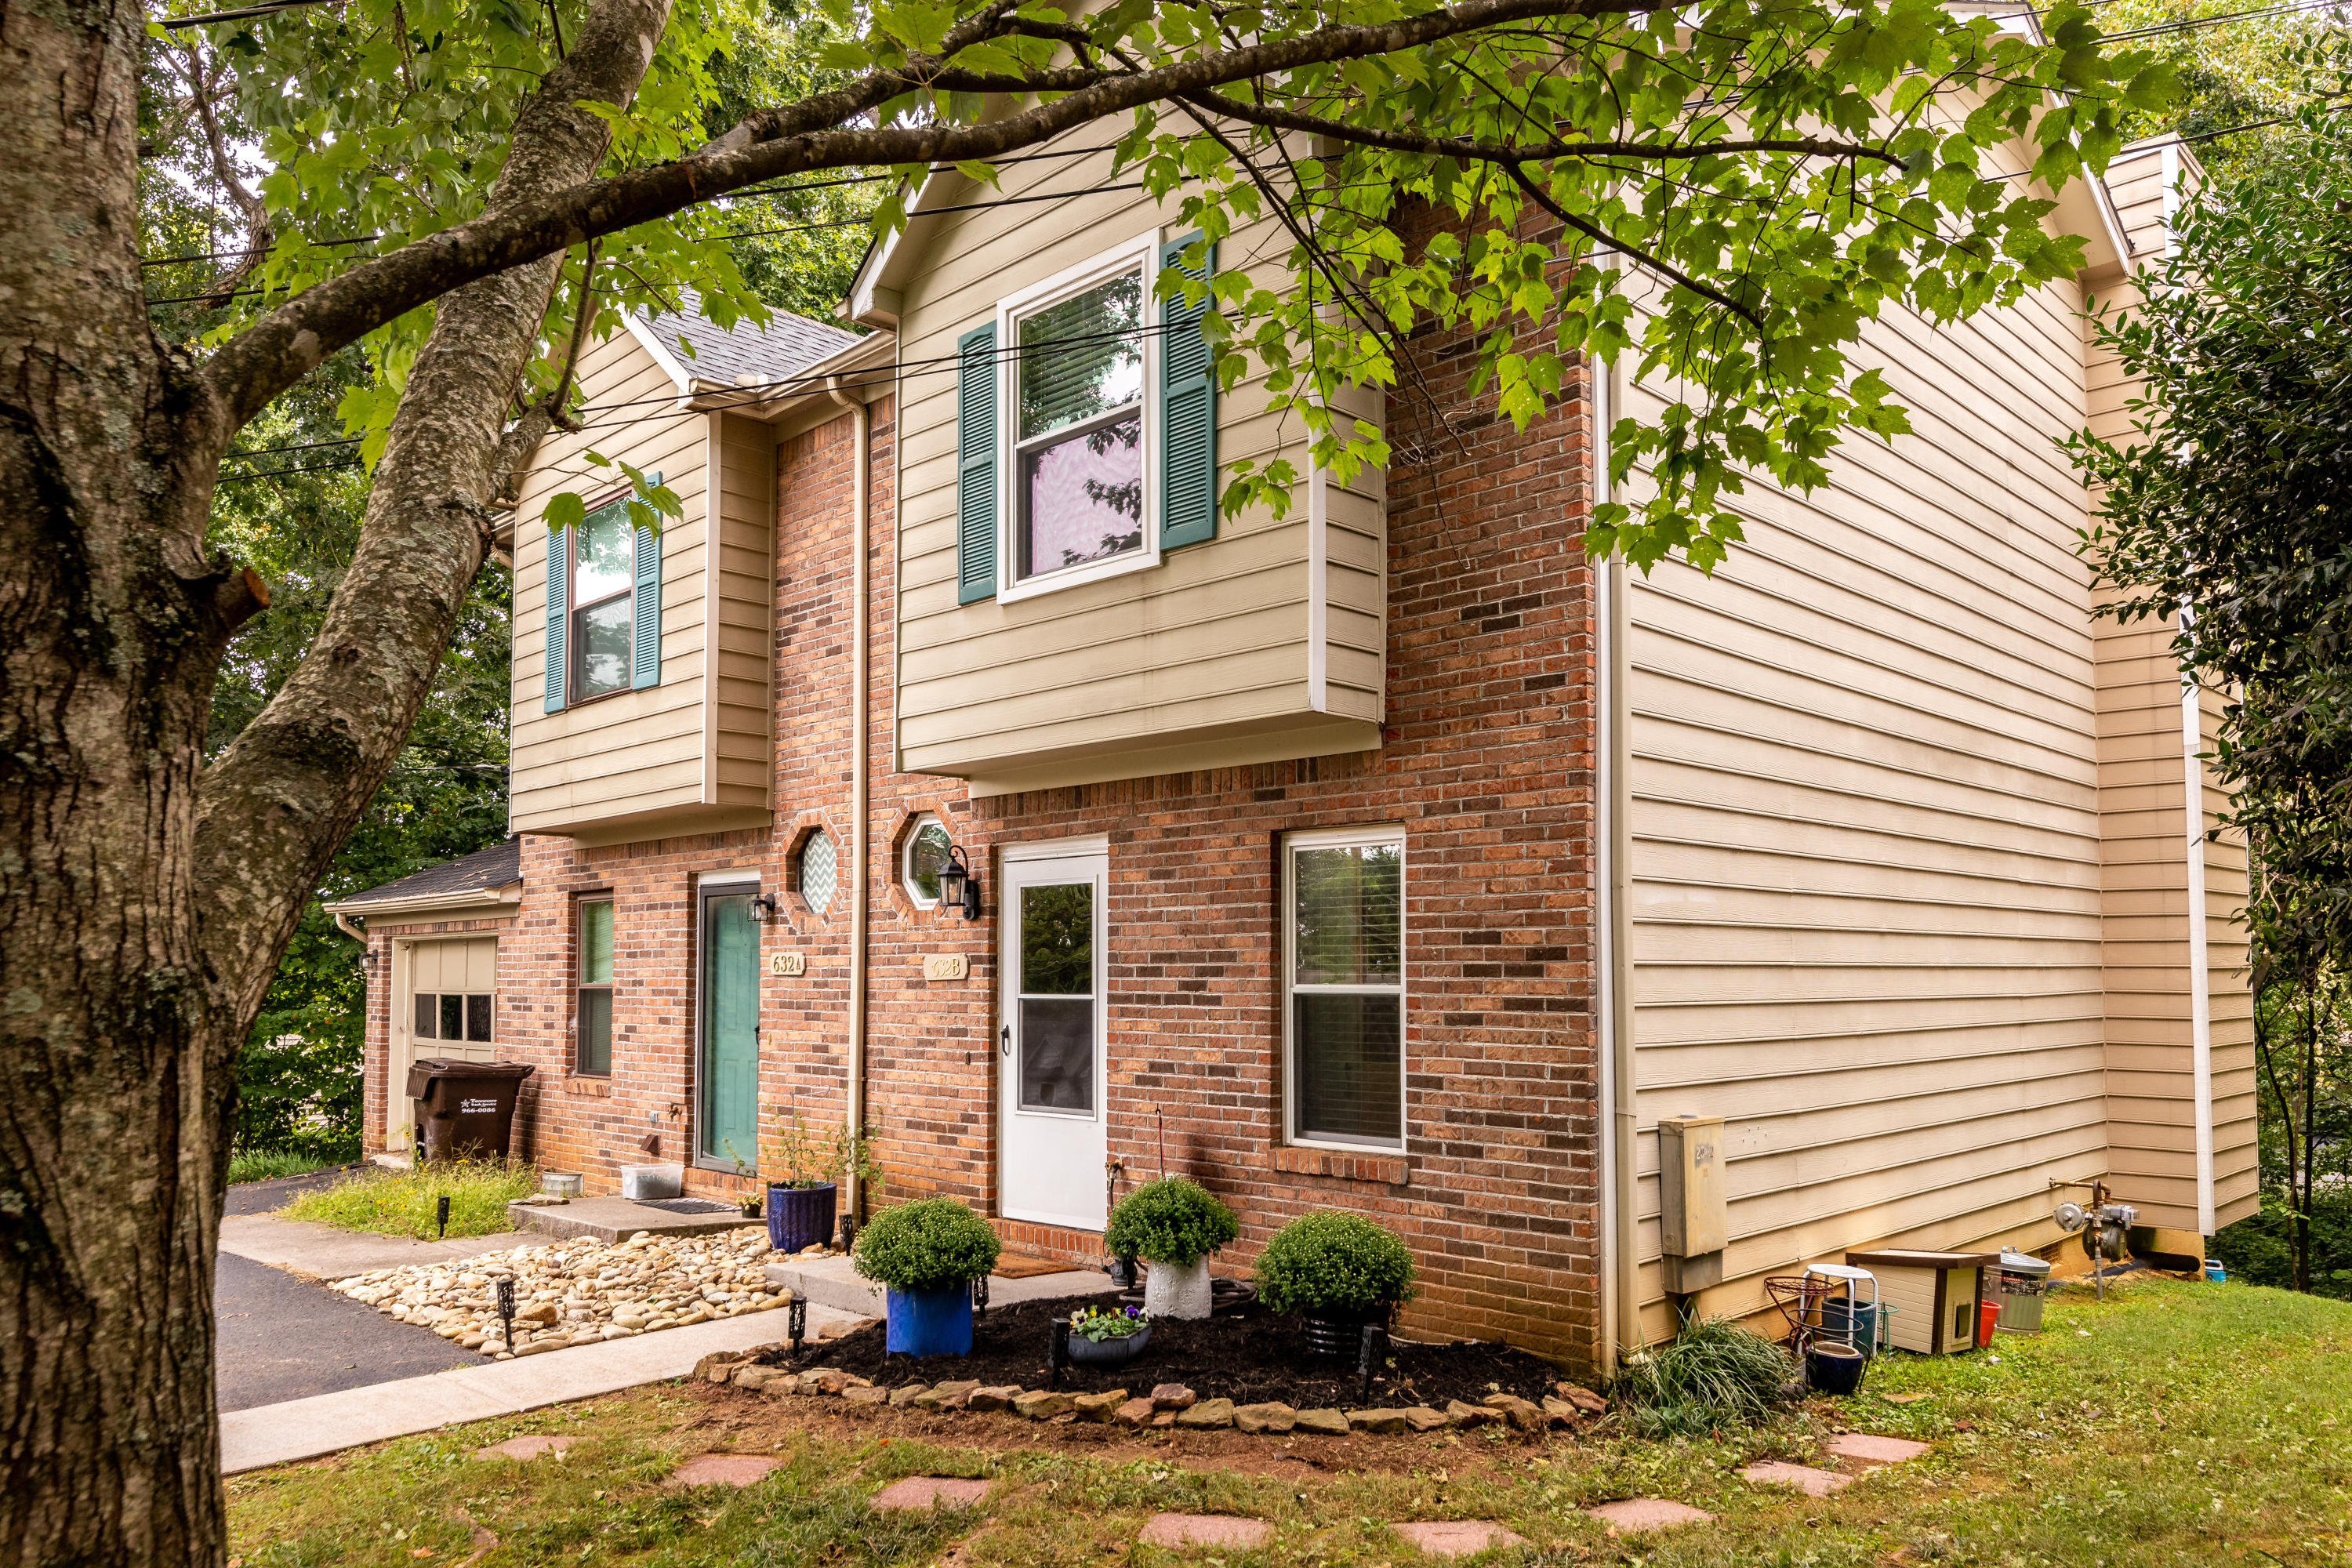 632 Idlewood, Knoxville, Tennessee, United States 37923, 2 Bedrooms Bedrooms, ,2 BathroomsBathrooms,Single Family,For Sale,Idlewood,1130693